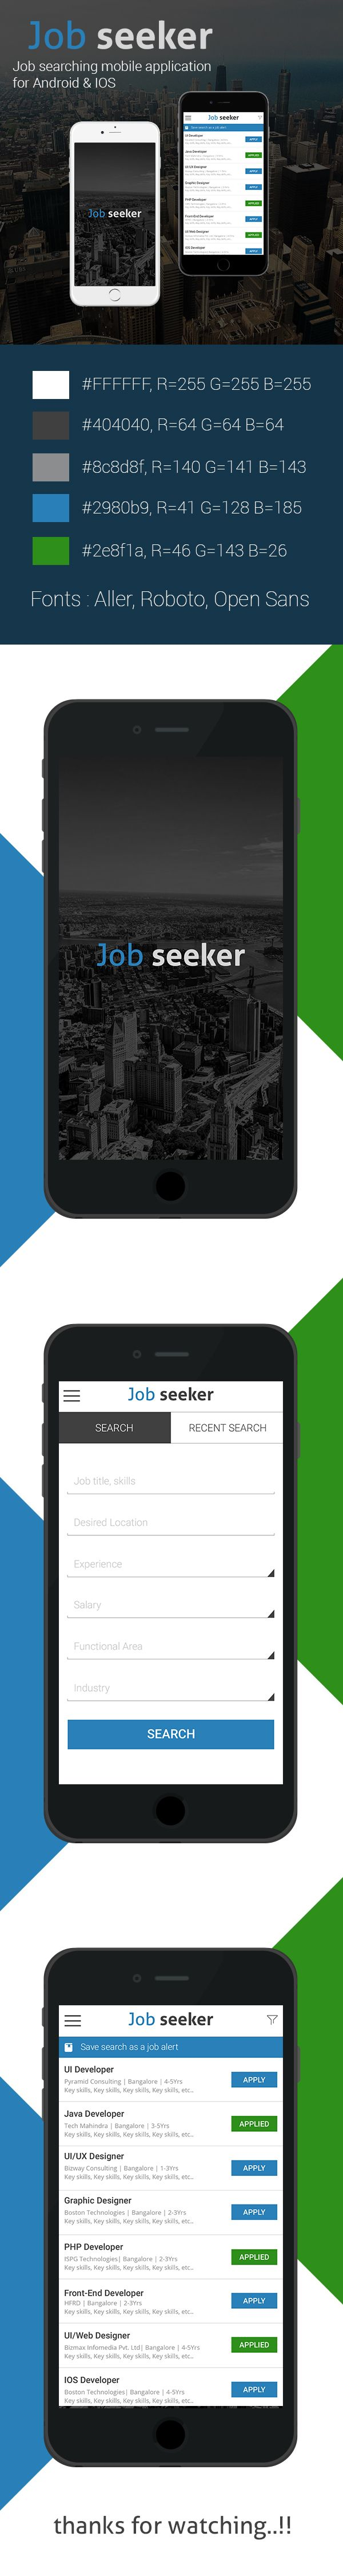 Job Seeker Mobile Appliction for Android & IOS on Behance